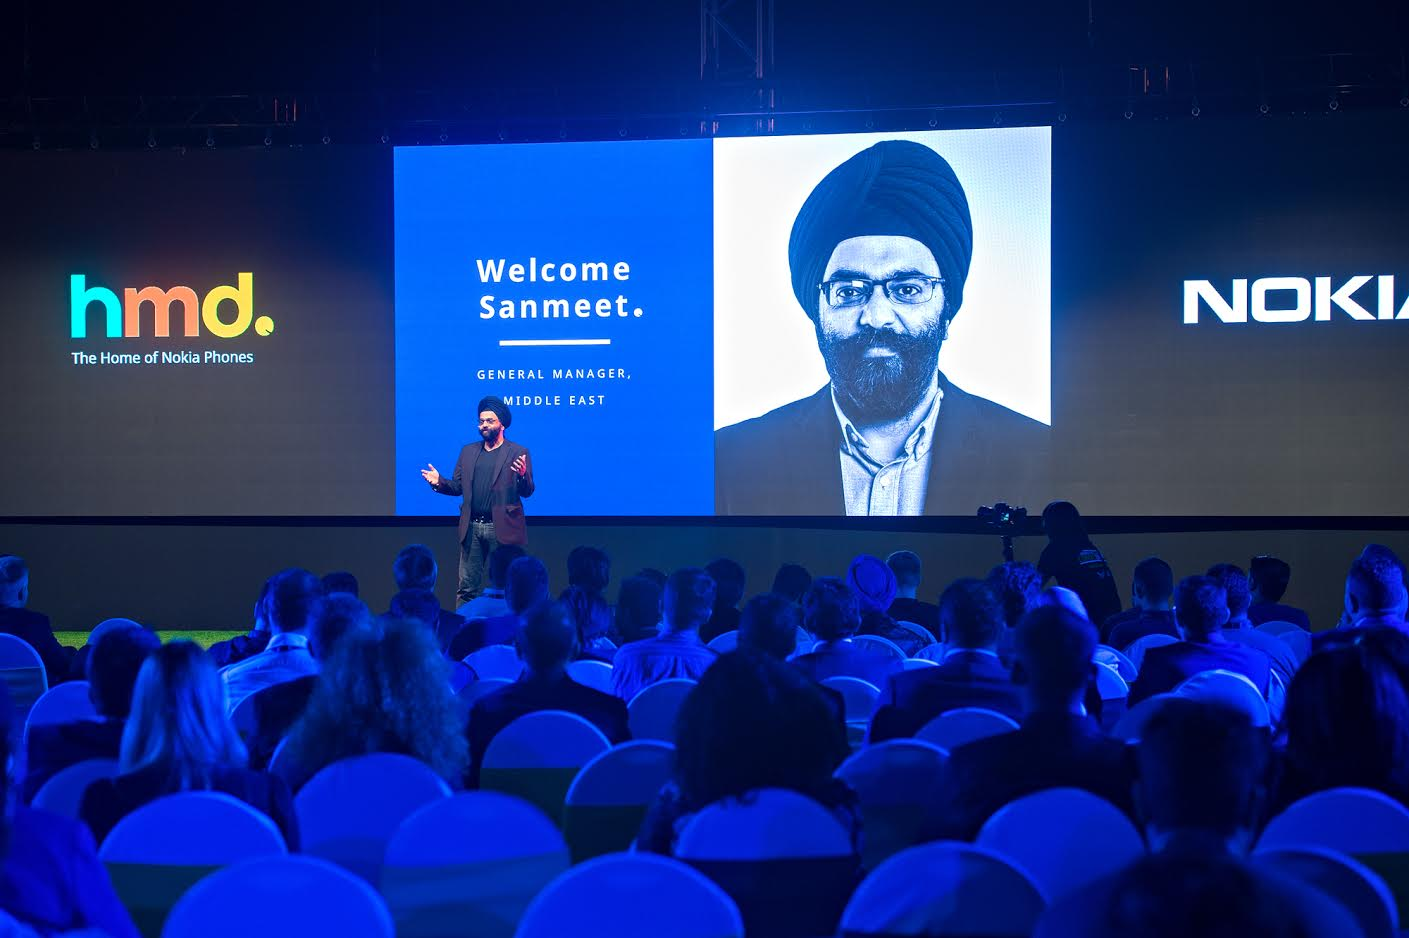 Nokia General Manager in the middle east Sanmeet Singh